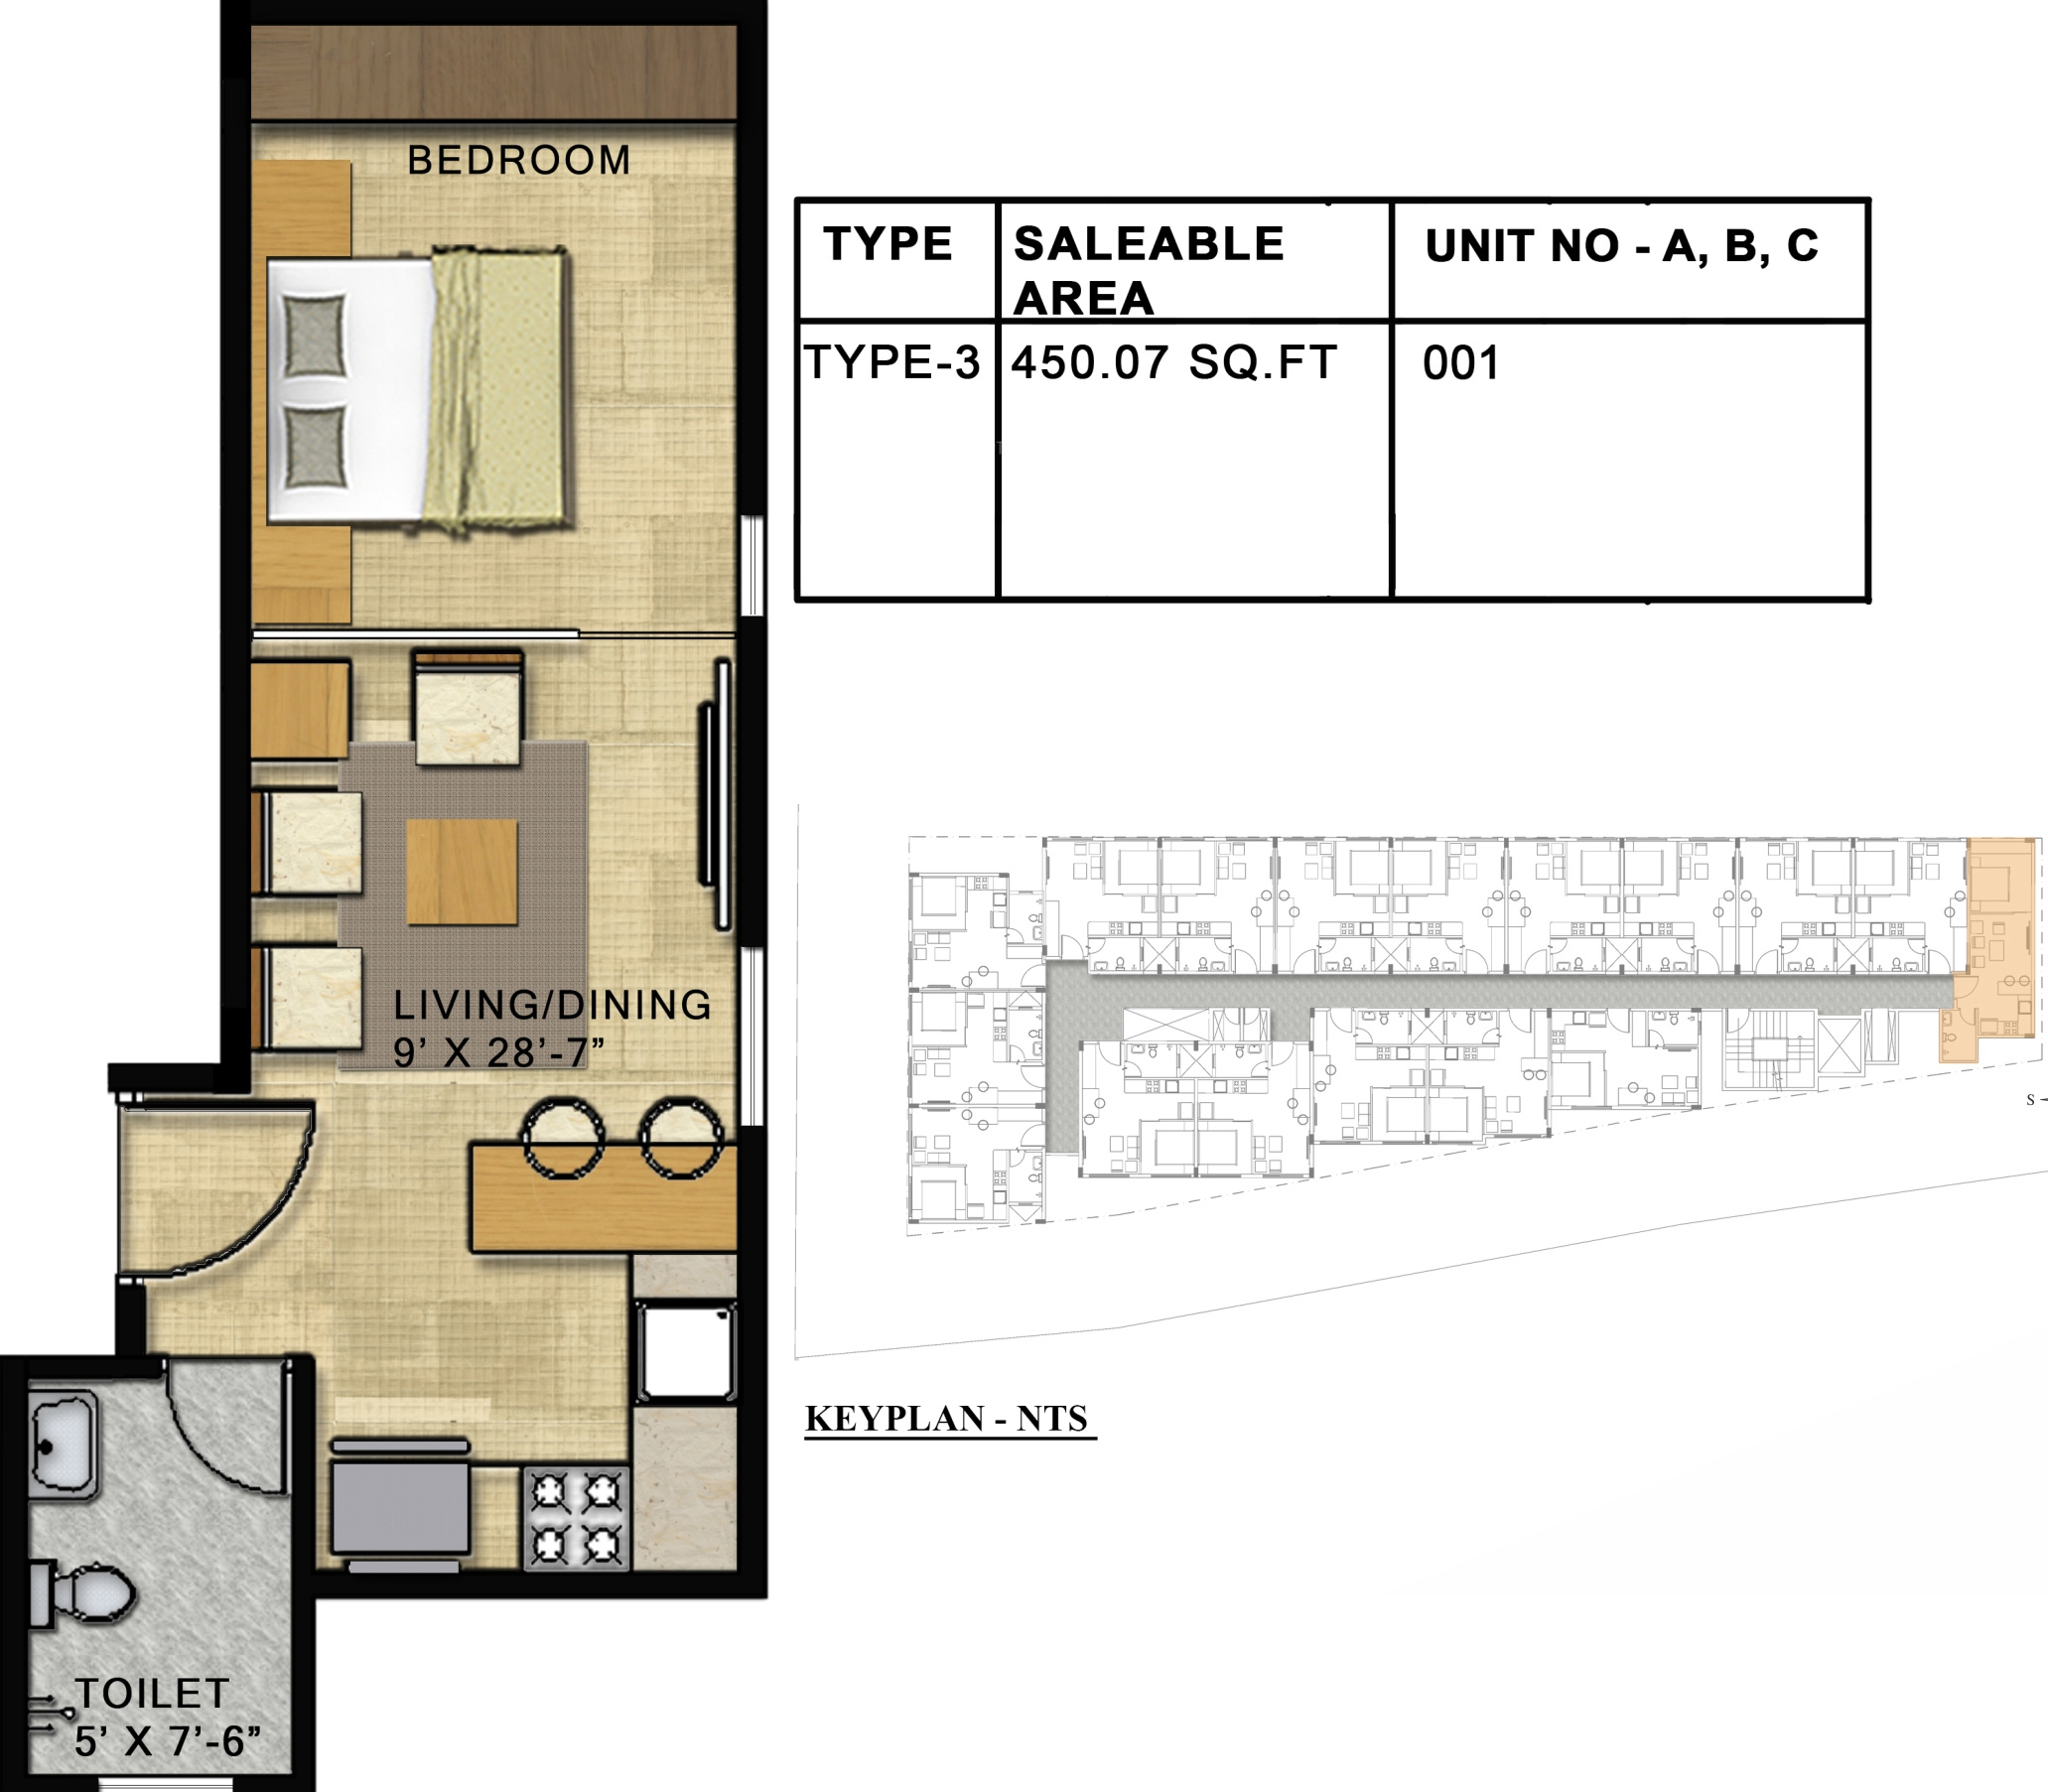 700 sq feet 700 sq ft home plans attractive image result for 700 sq ft apartment design